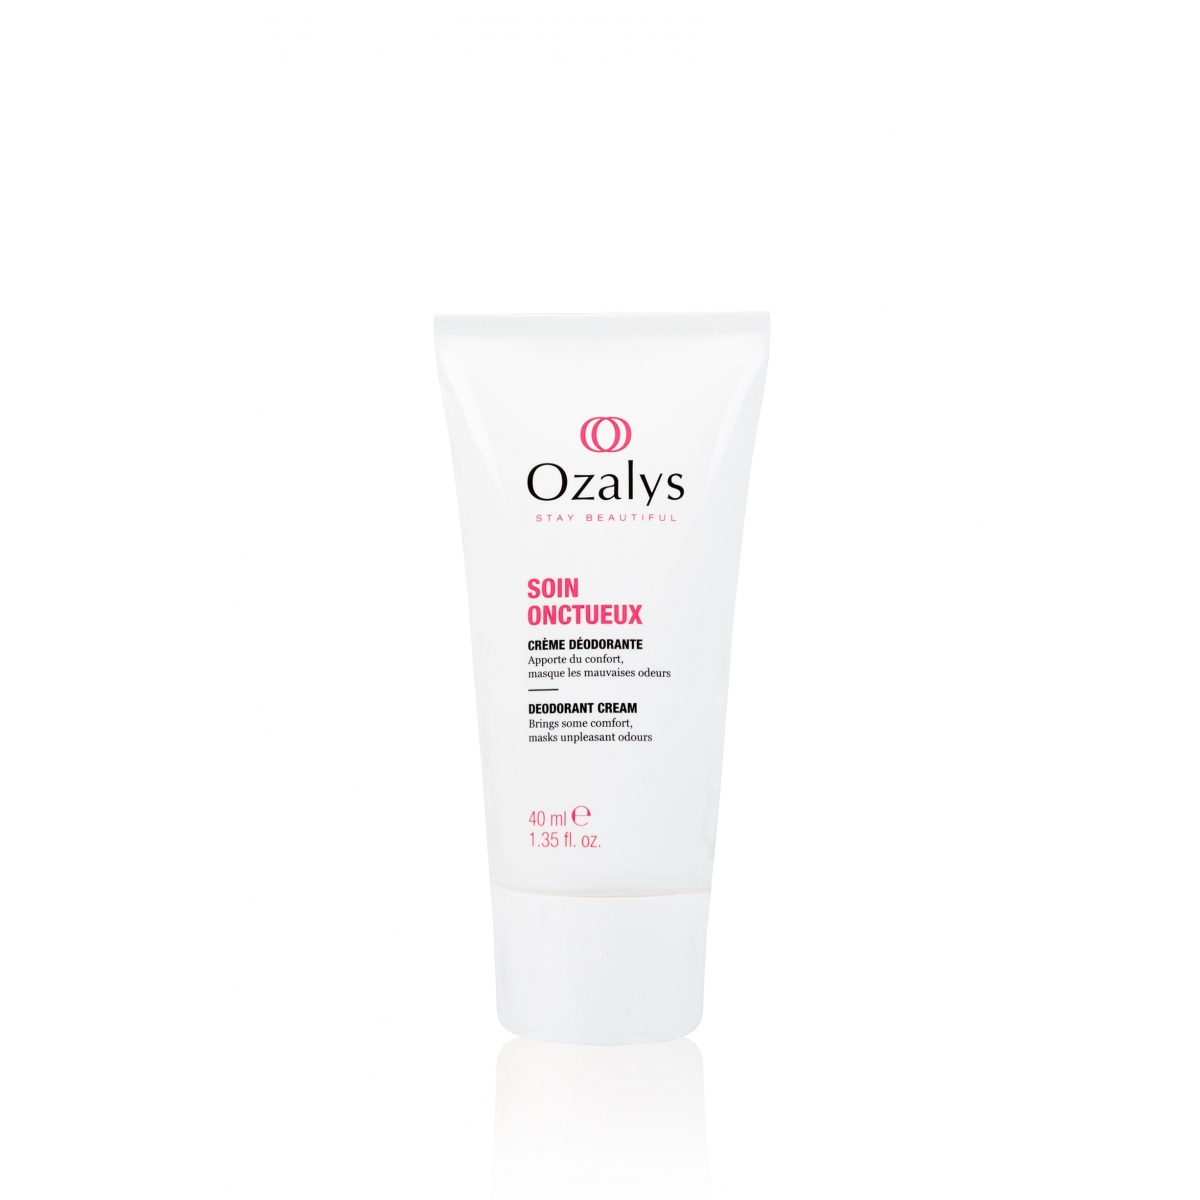 SOINS CANCER - CREME DEODORANTE SOIN ONCTEUX OZALYS